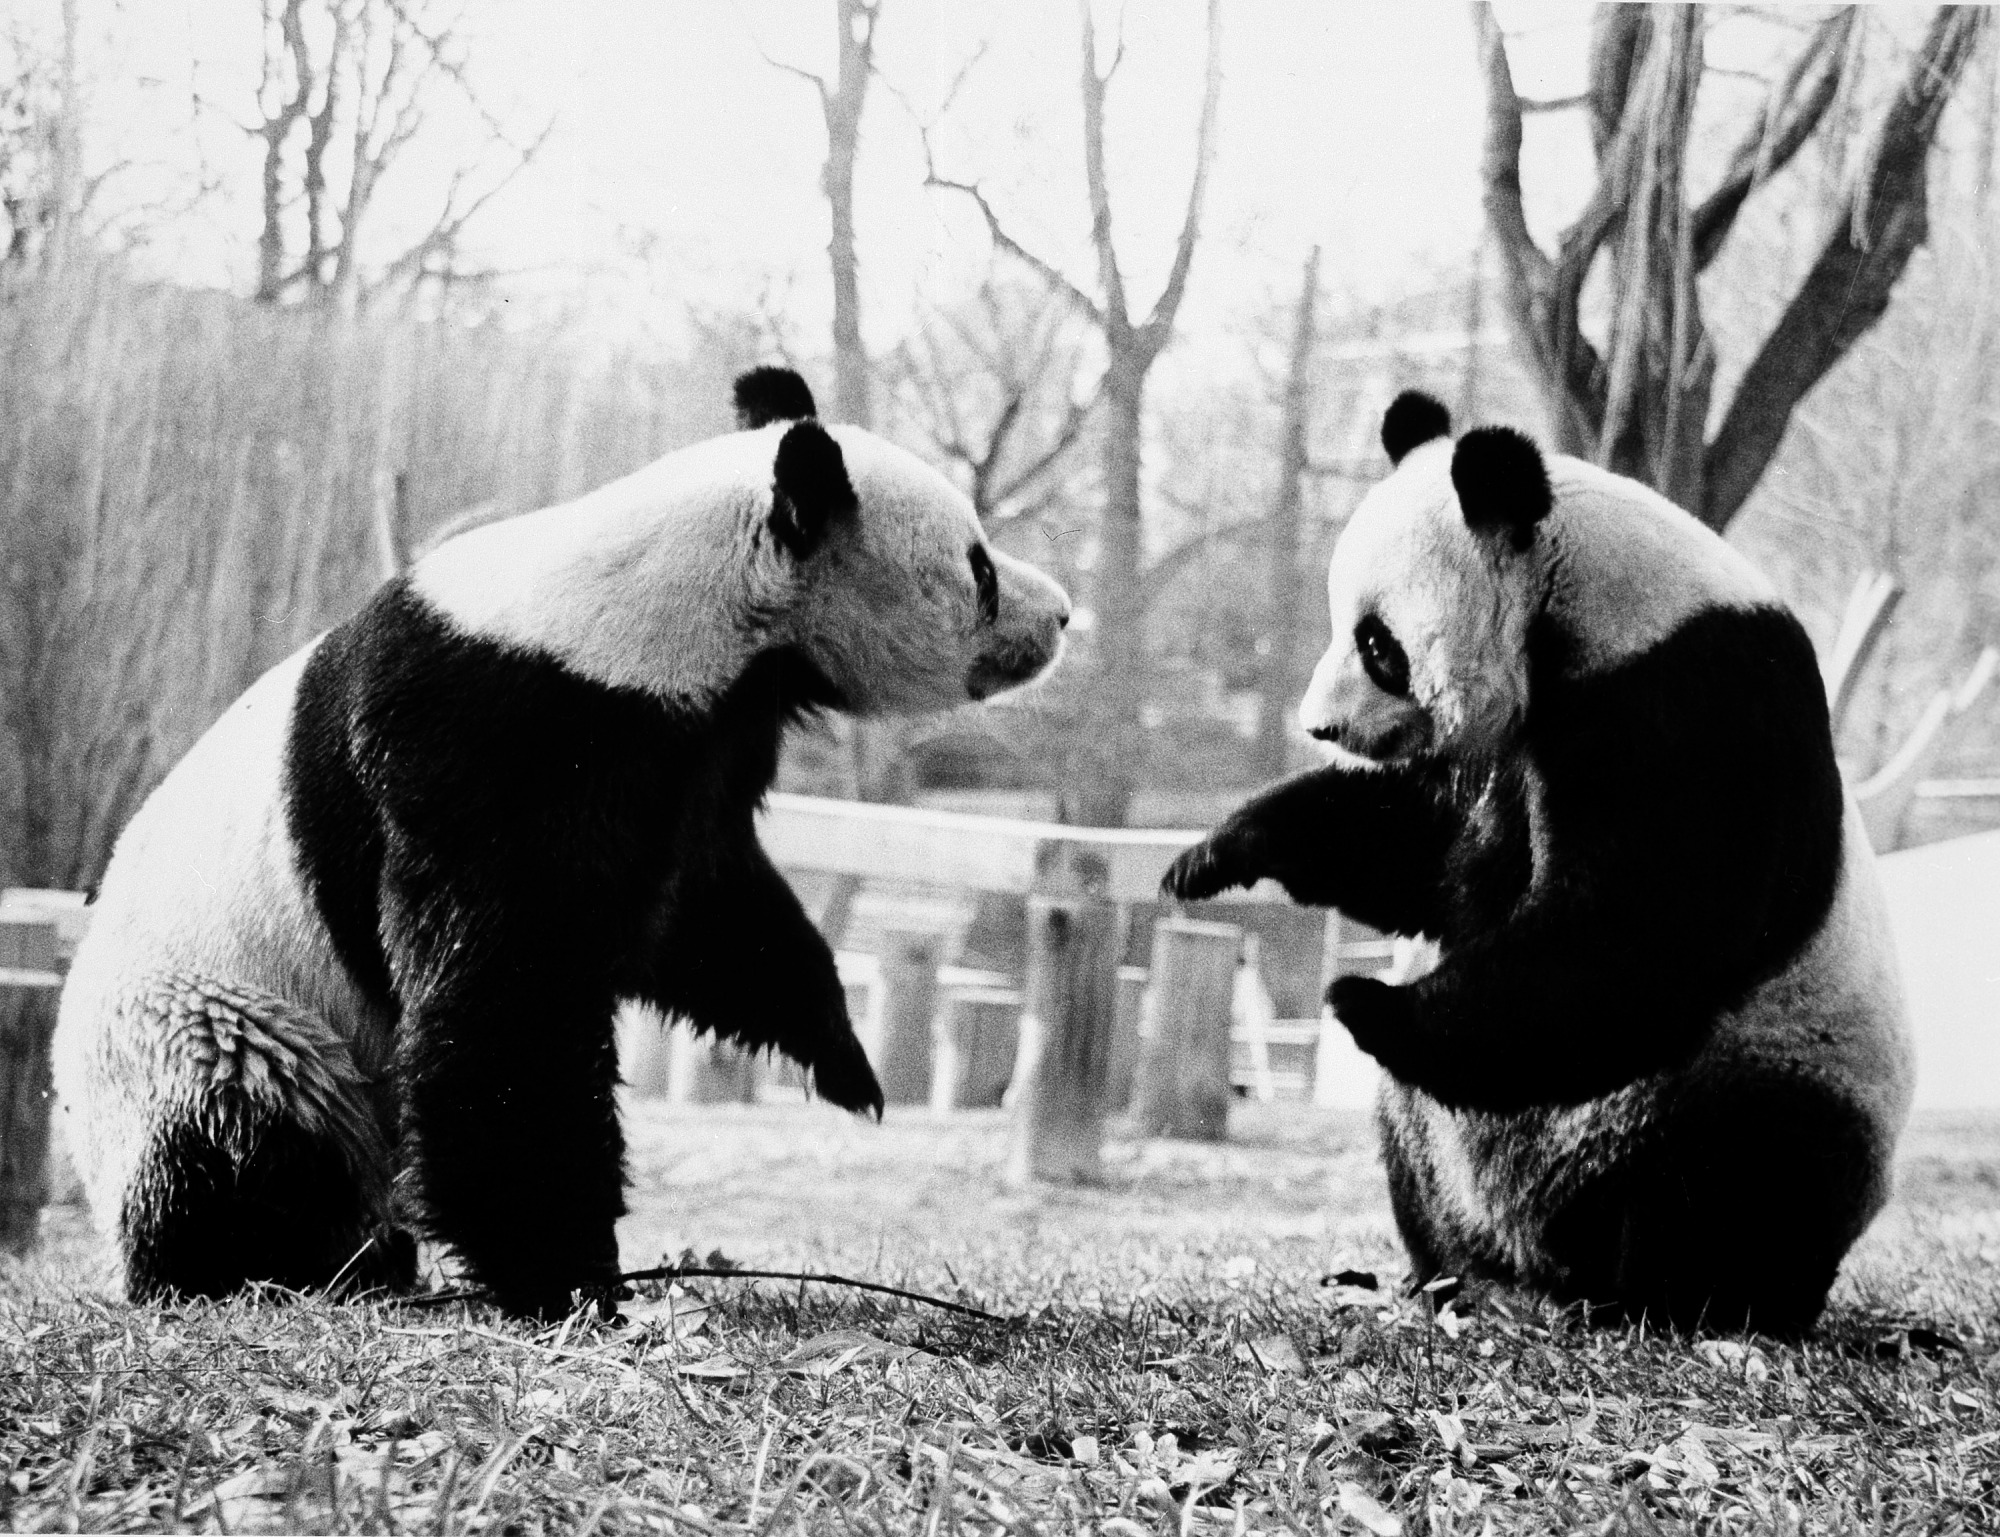 Ling-Ling and Hsing-Hsing at National Zoo